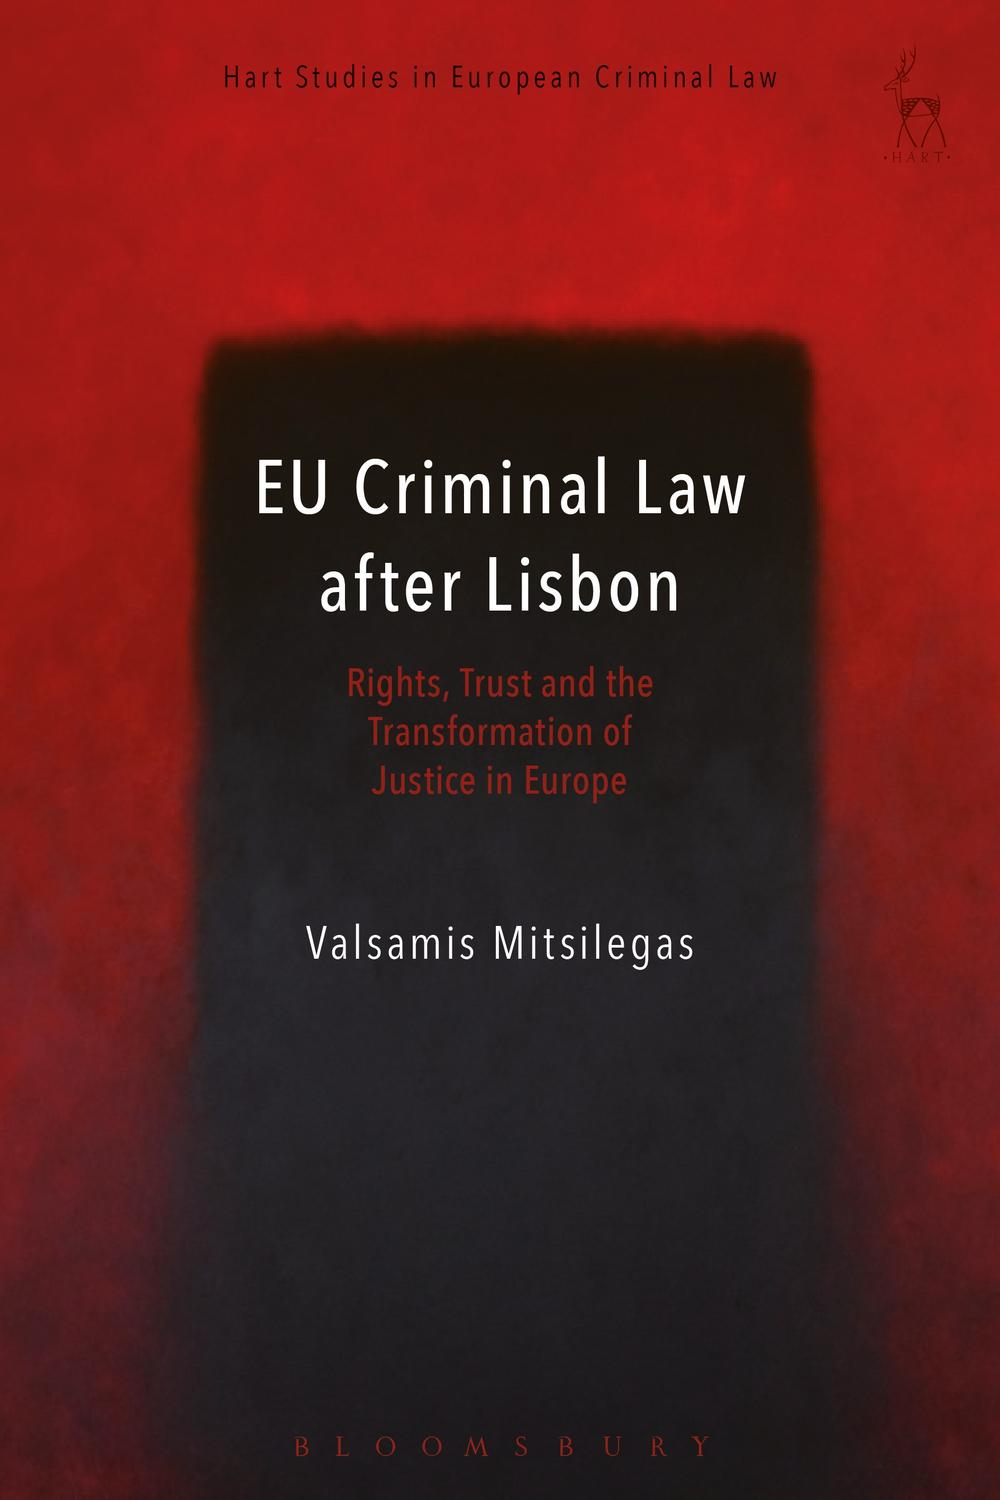 EU Criminal Law after Lisbon by Valsamis Mitsilegas | Read